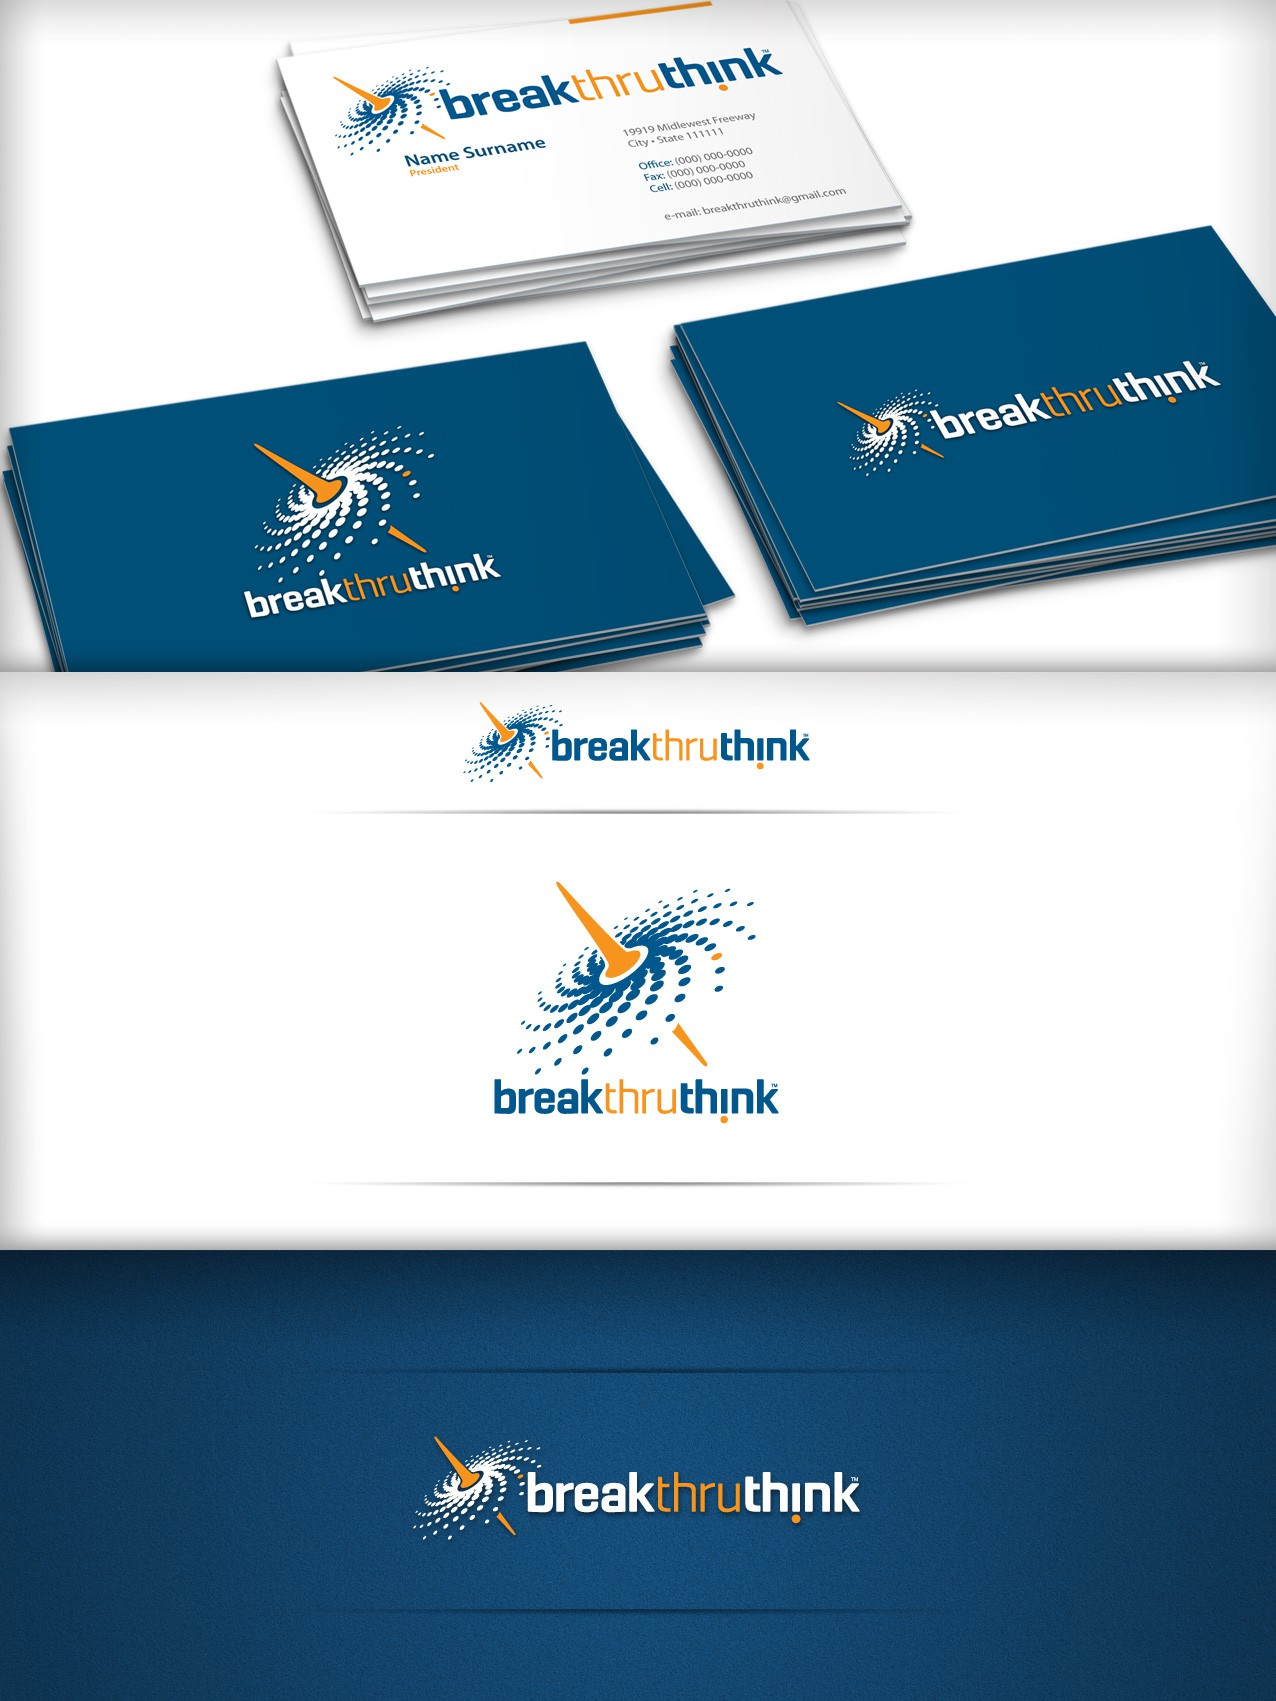 New logo wanted for Break thru Think